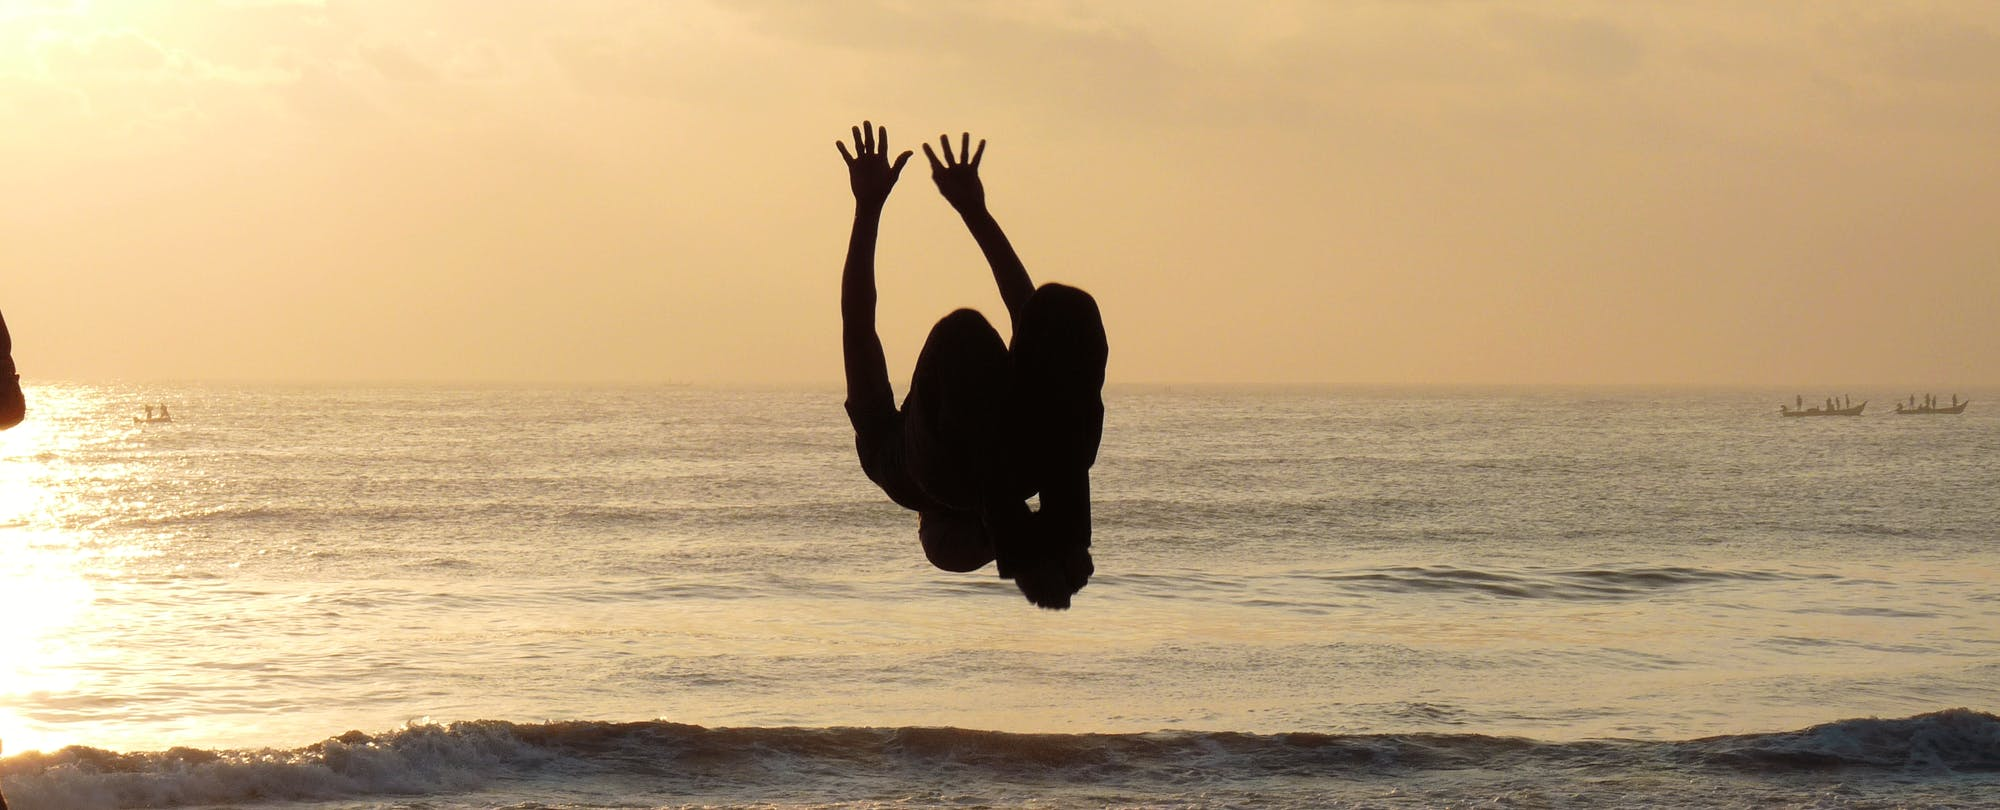 Start Flipping Out! Changing Professional Development